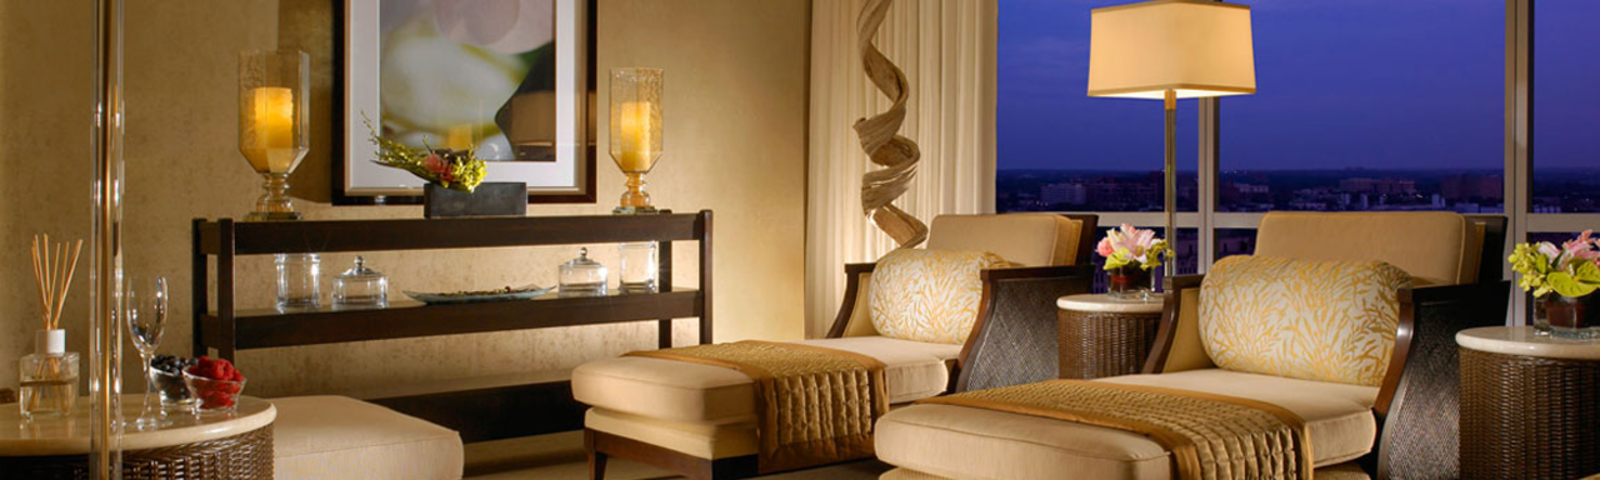 fort worth vacation hotels restaurants maps things to do in fort worth. Black Bedroom Furniture Sets. Home Design Ideas